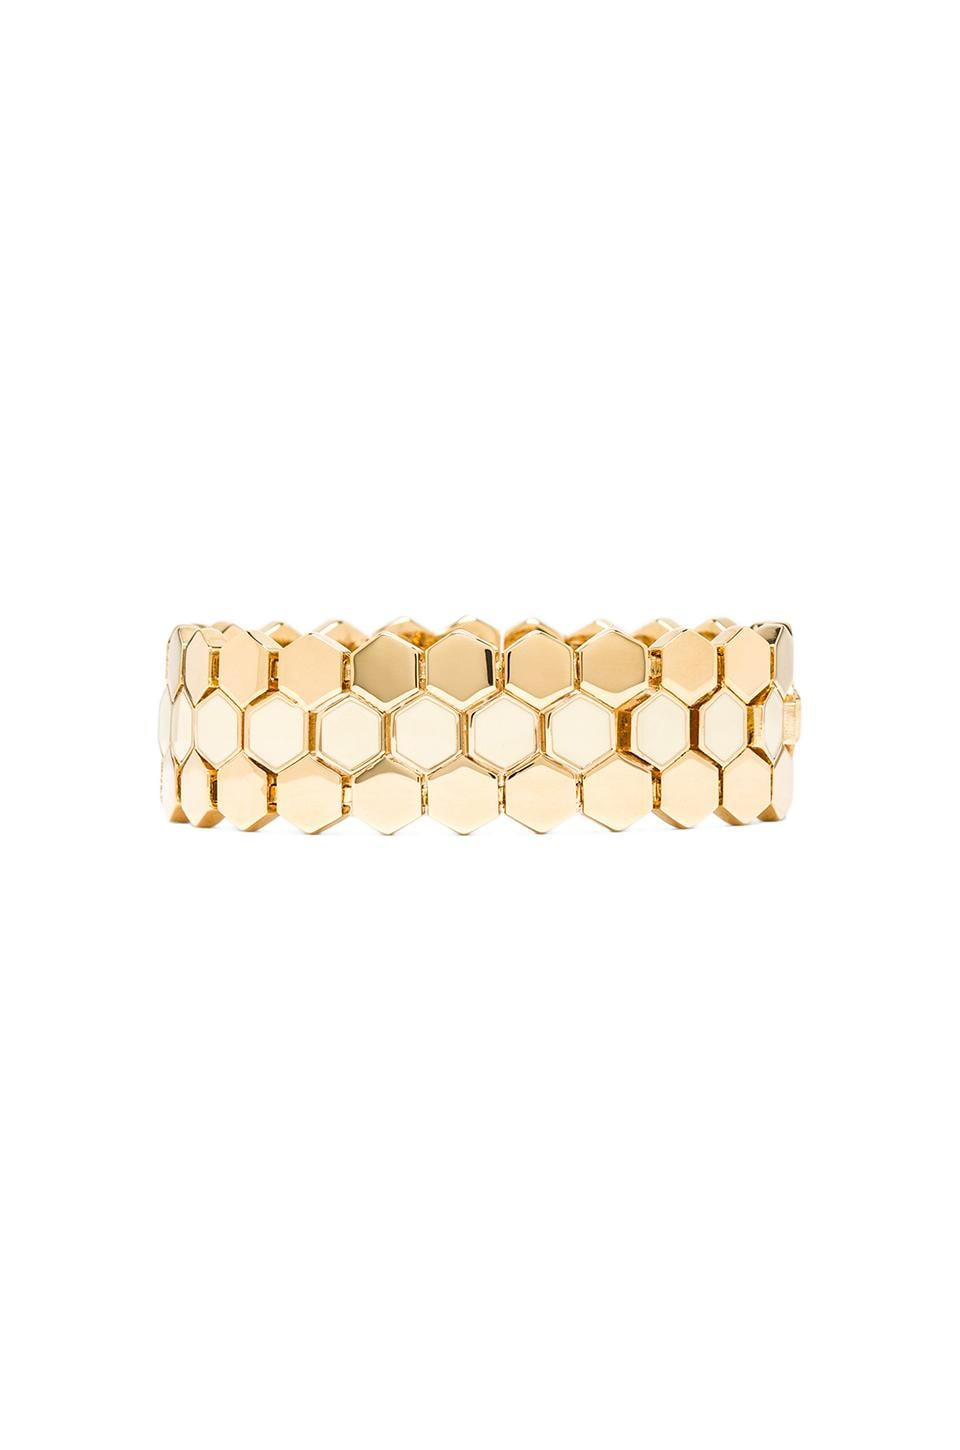 Marc by Marc Jacobs Octi Bolts Enamel Gate Link Bracelet in Cream & Oro